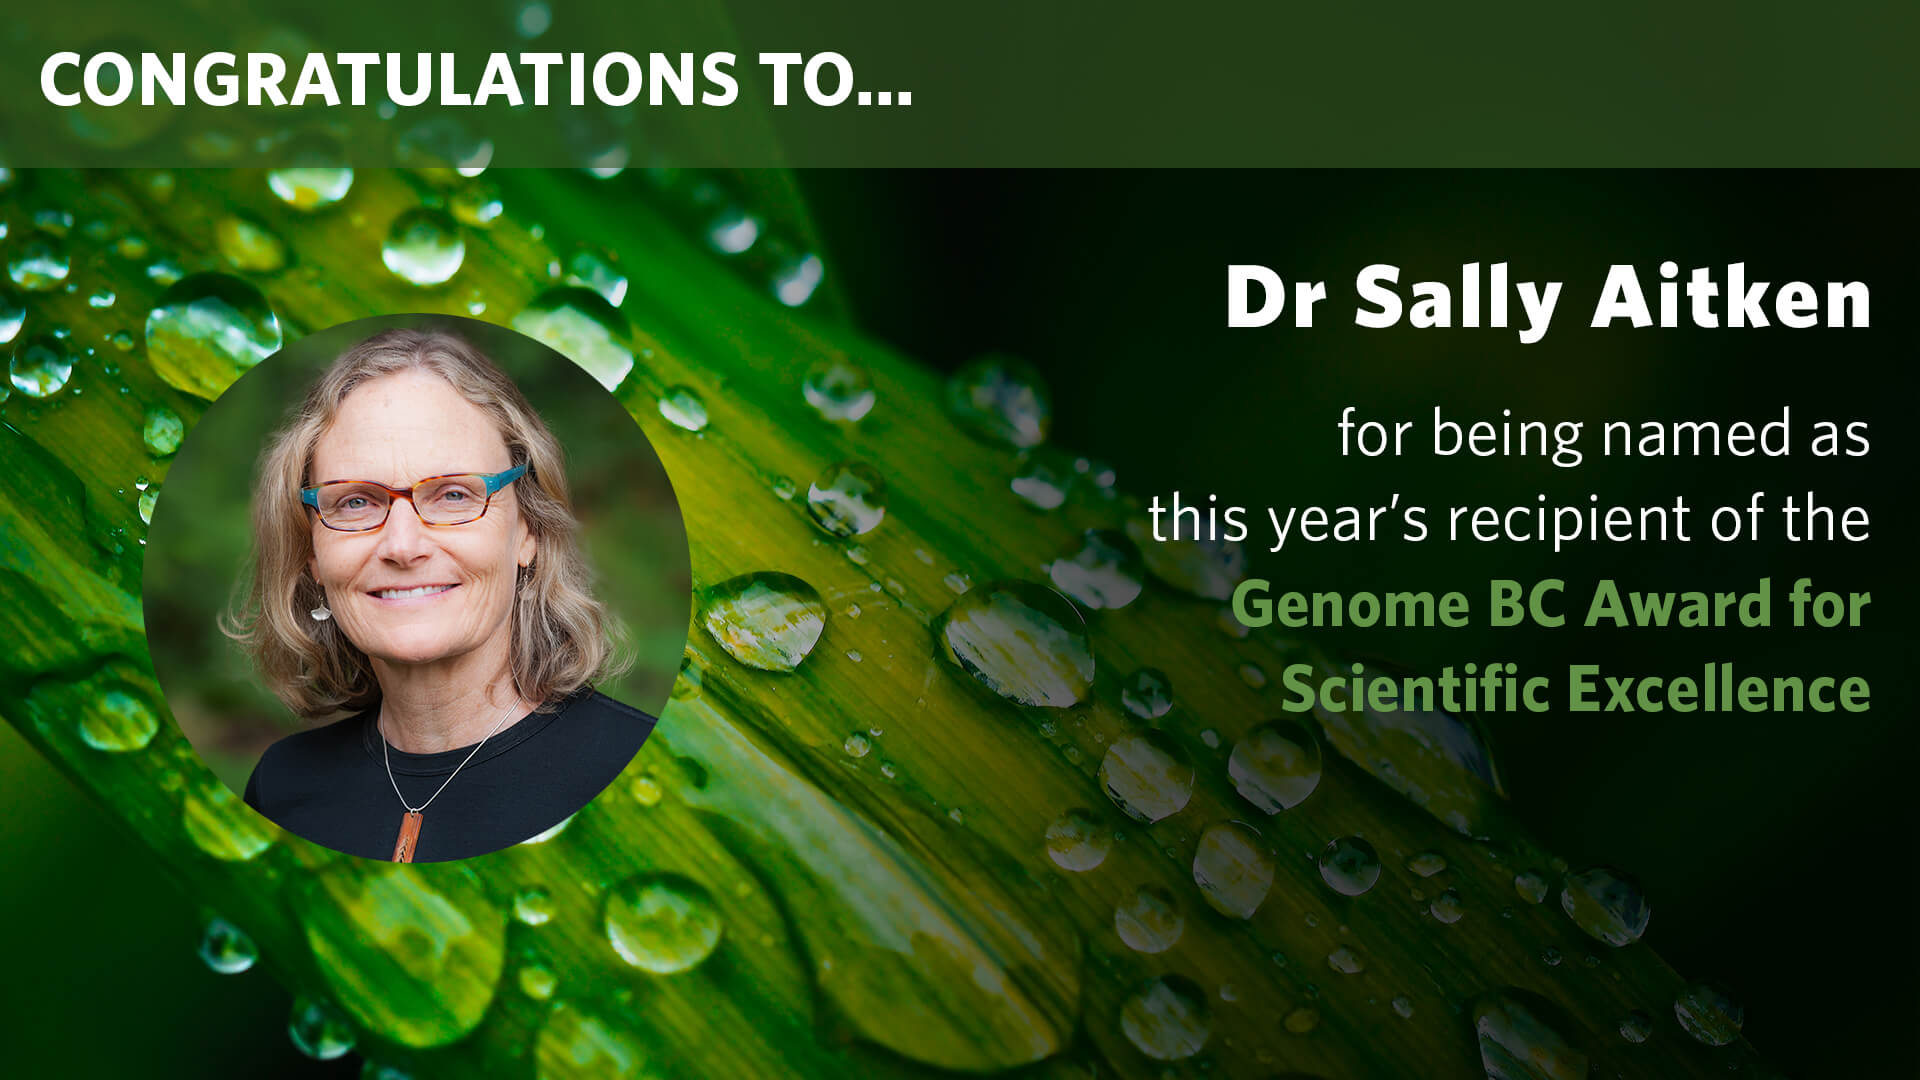 Sally Aitken named as 2018 recipient of the Genome BC Award for Scientific Excellence